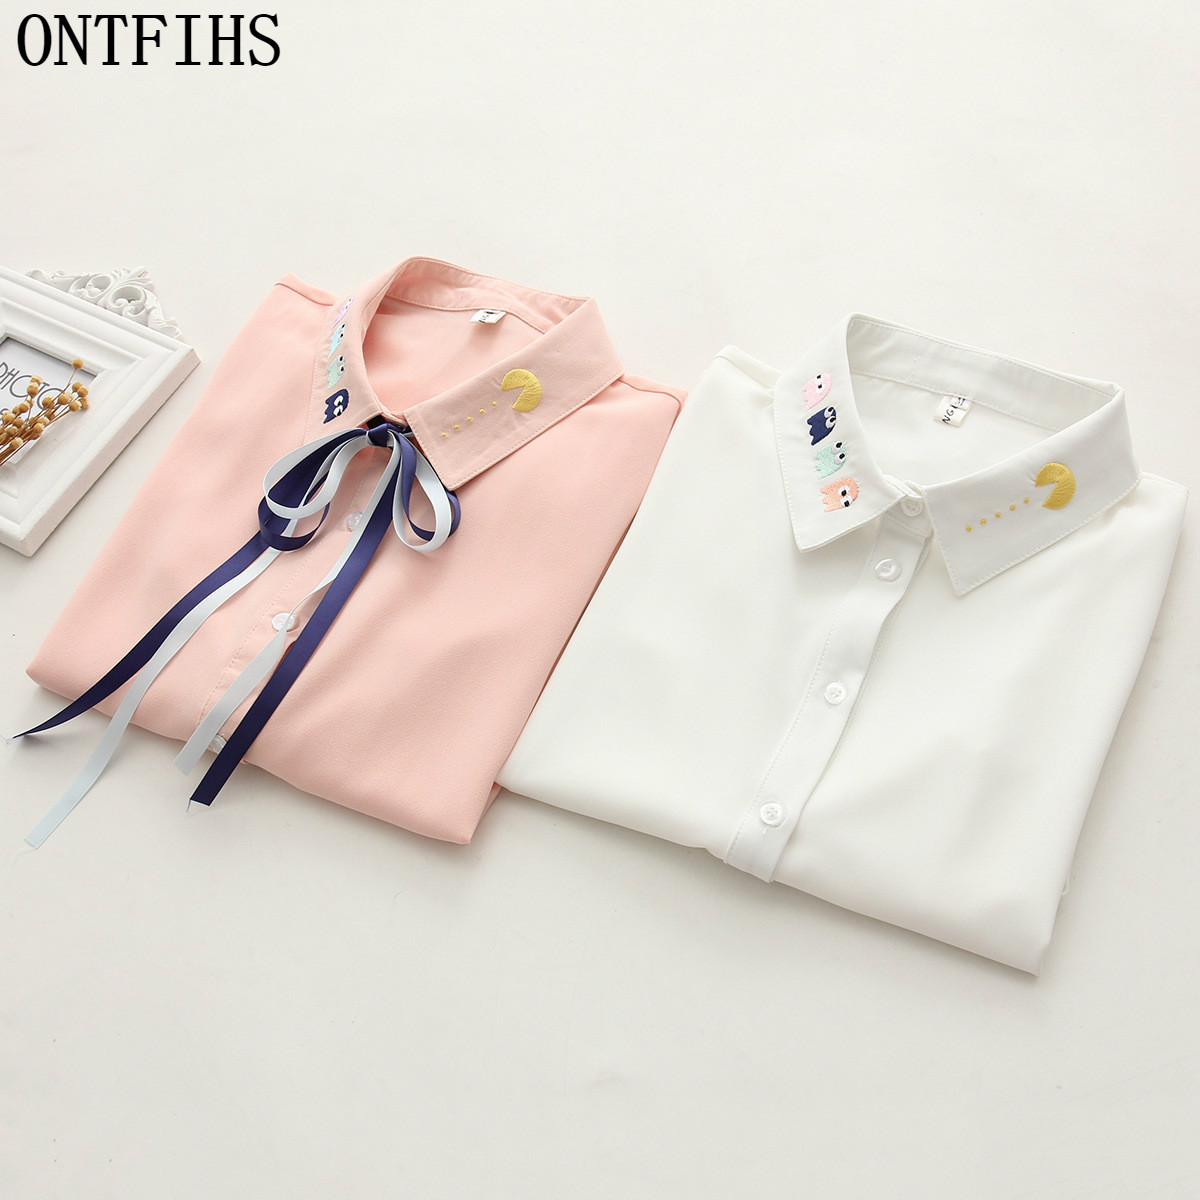 ONTFHIS Shirts Embroidery with Bow Tie Womens Tops and Blouse Women's Fashion Novelties Cardigan S-79